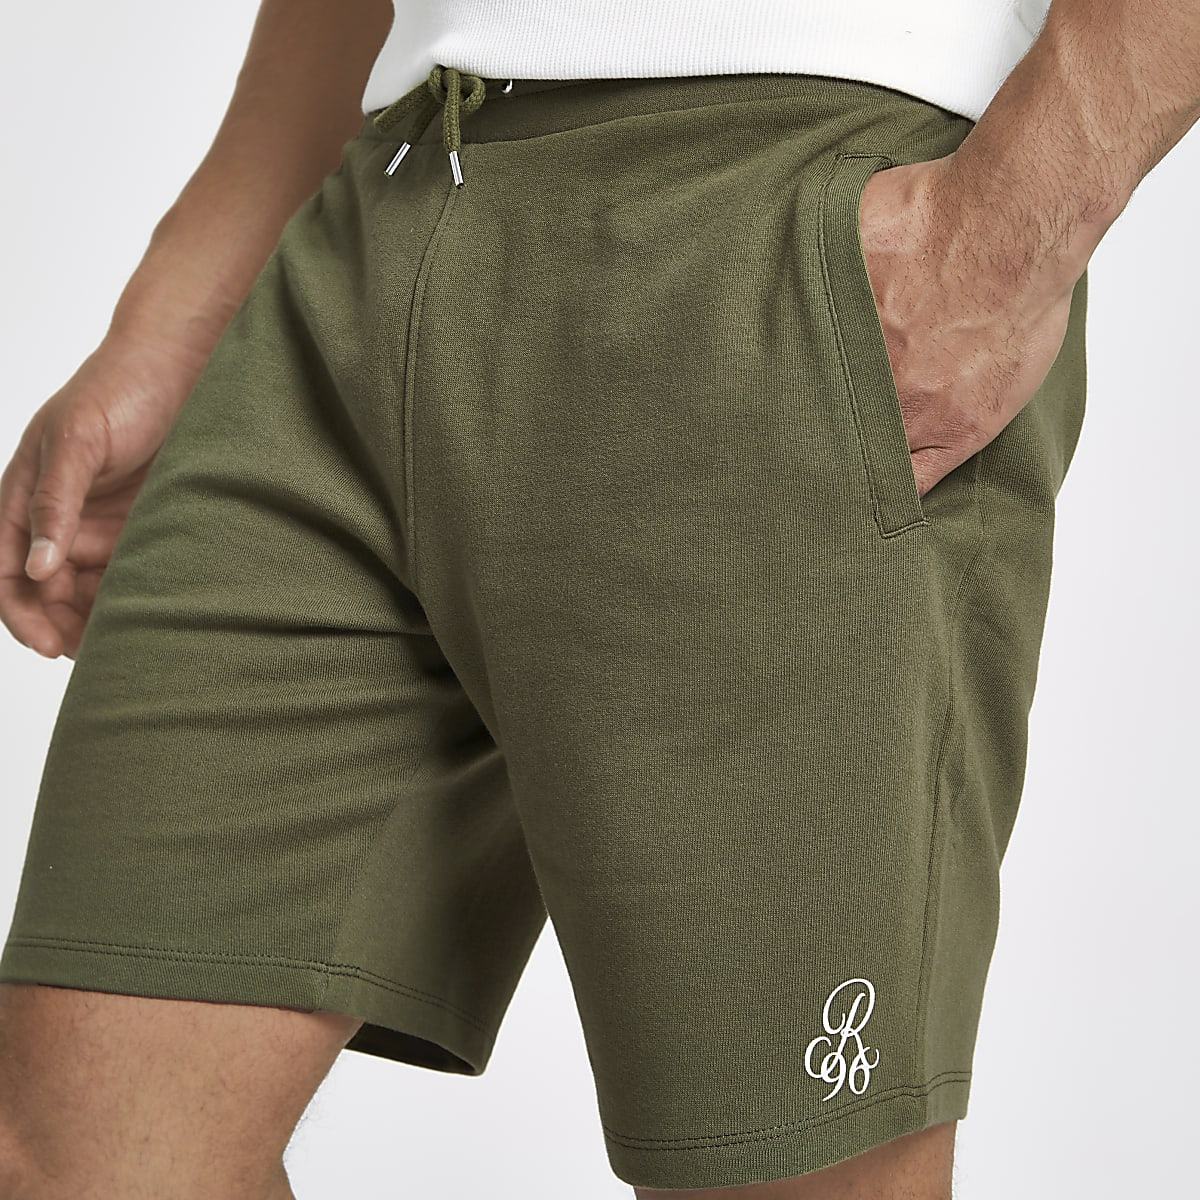 Khaki R96 embroidered slim fit shorts